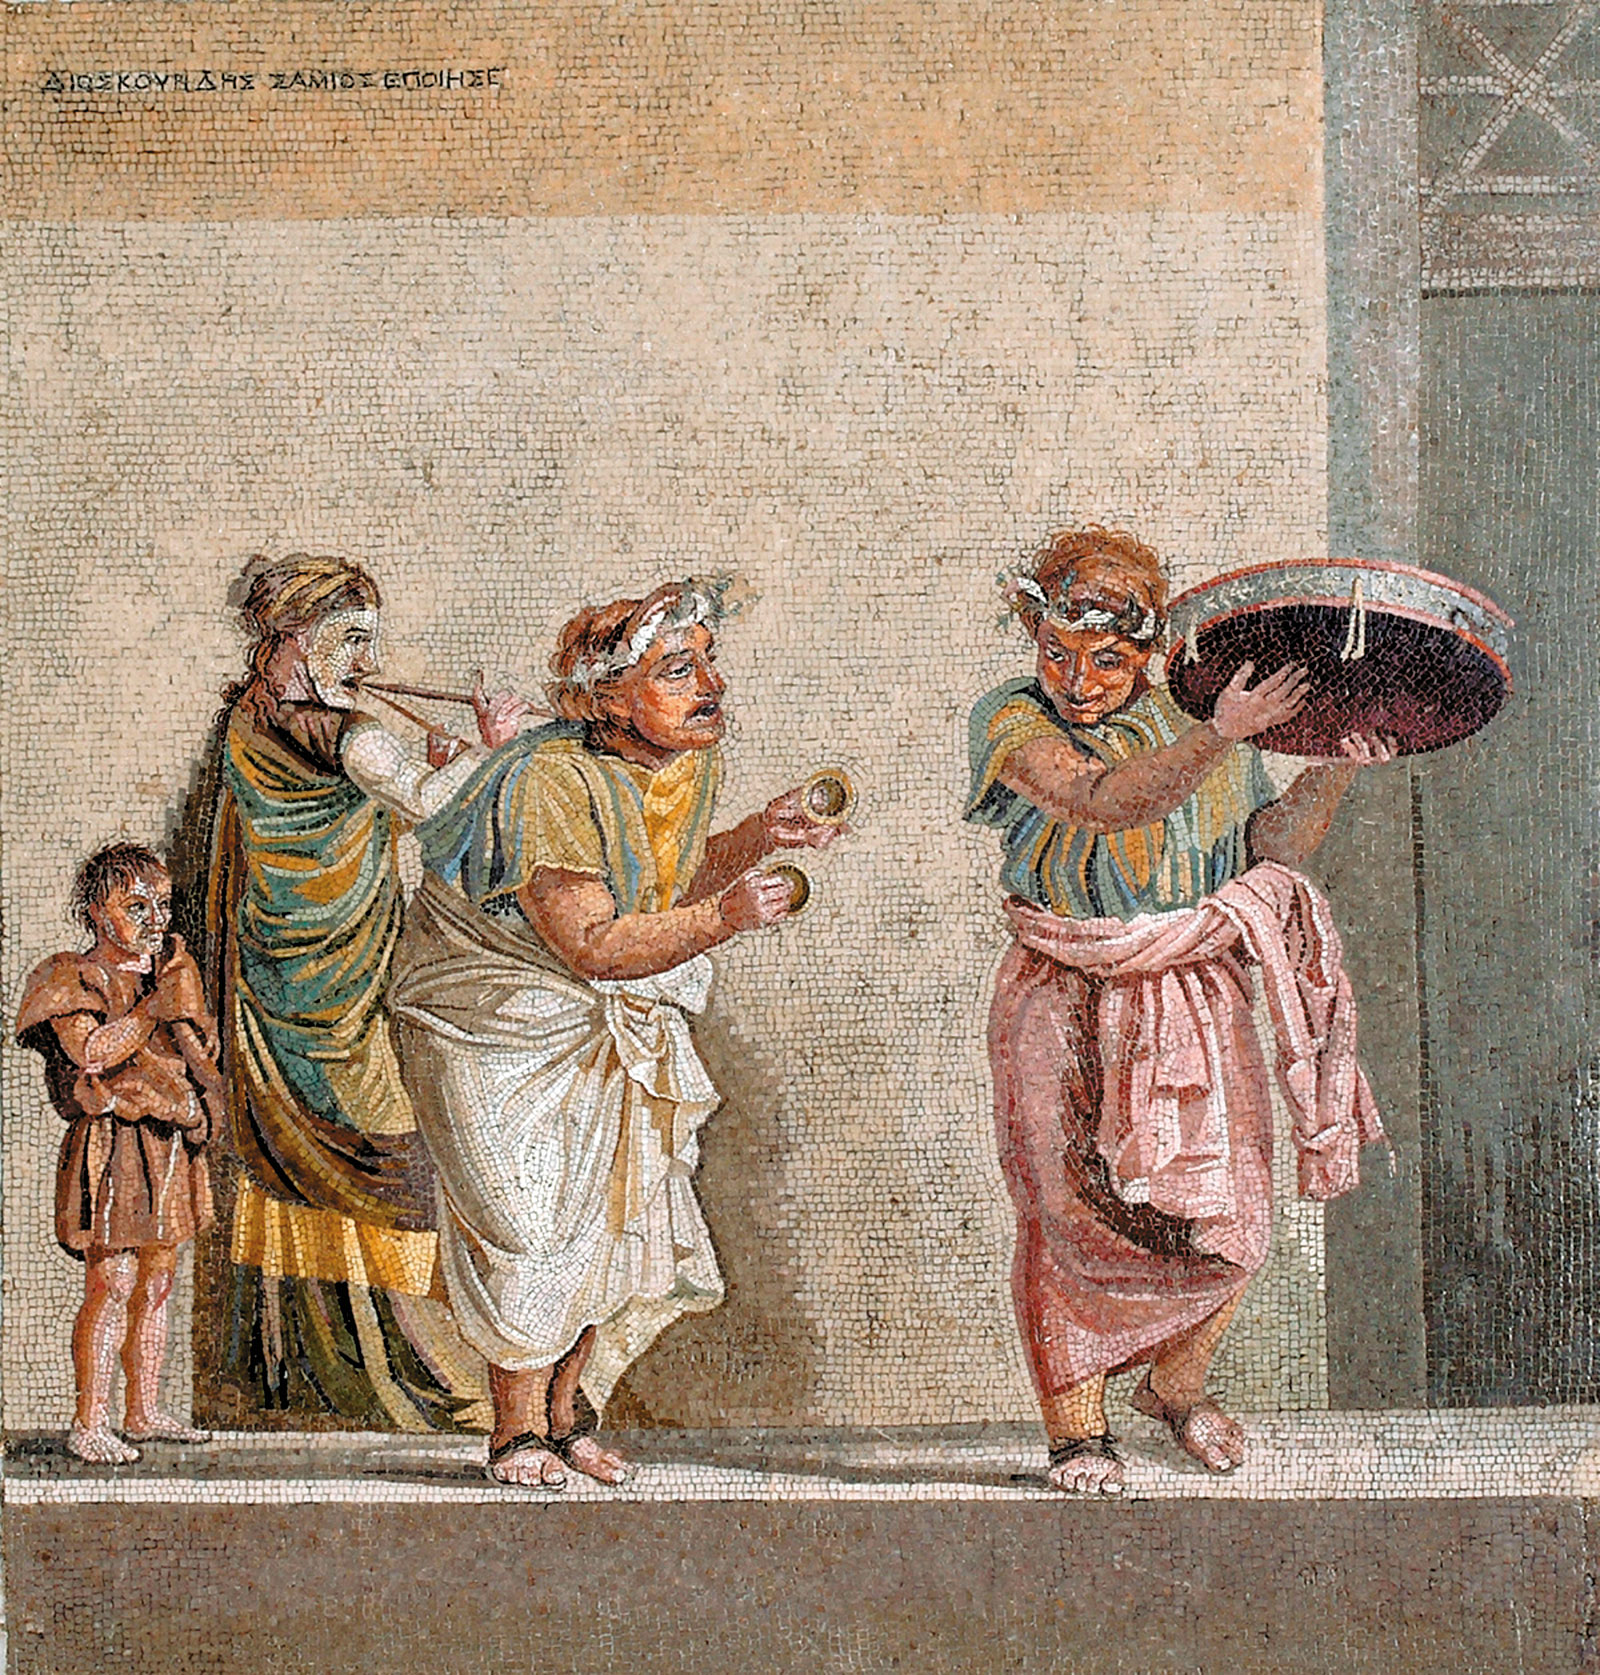 Street musicians in a scene from a comedy by the Greek playwright Menander; mosaic by Dioscorides of Samos from the Villa of Cicero, Pompeii, circa 100 BCE